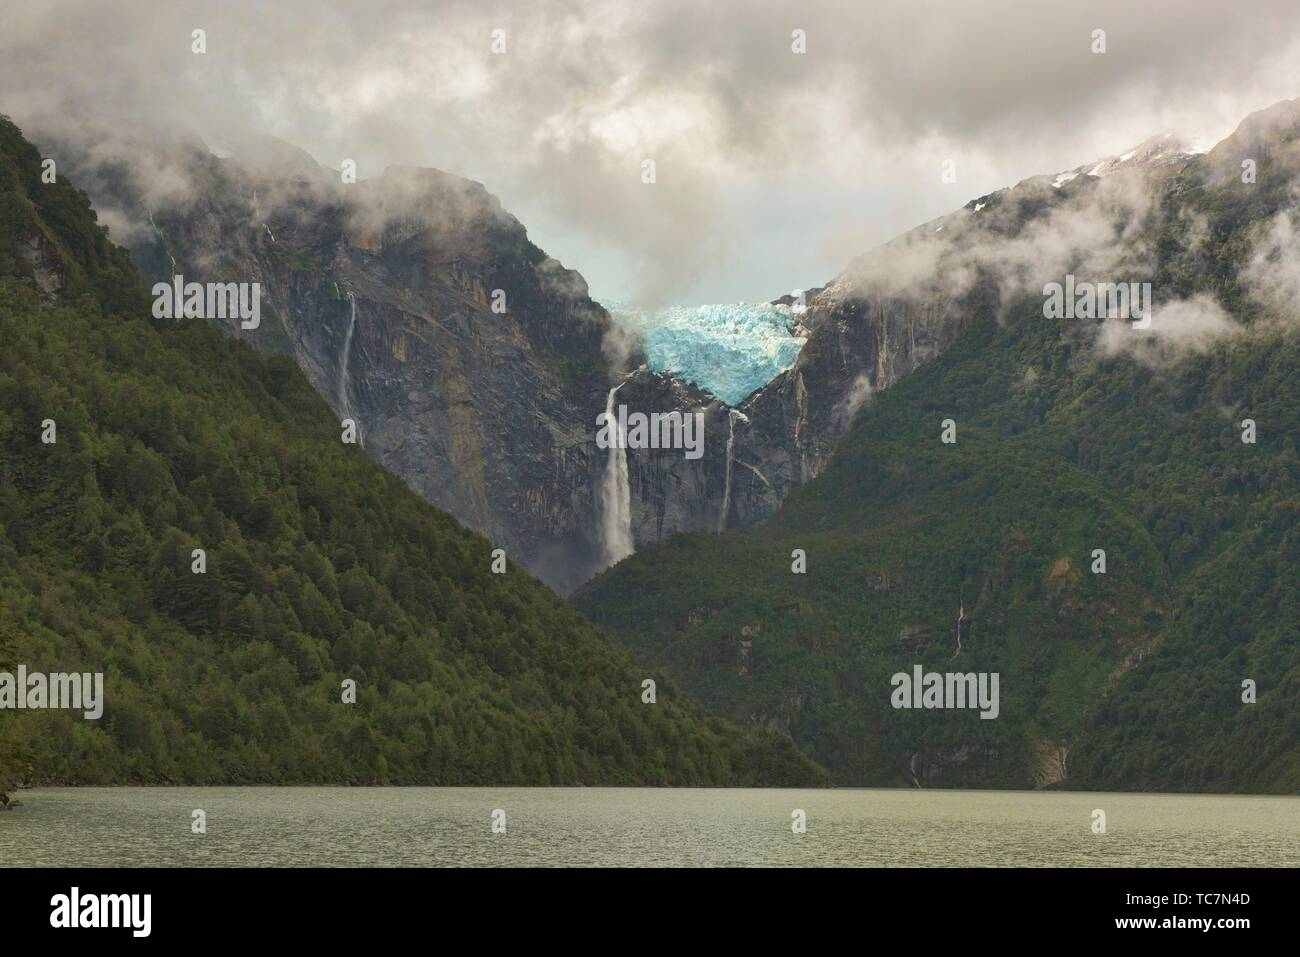 Ventisquero Colgante hanging glacier above Laguna Tempanos in Queulat National Park, Patagonia, Aysen, Chile. - Stock Image